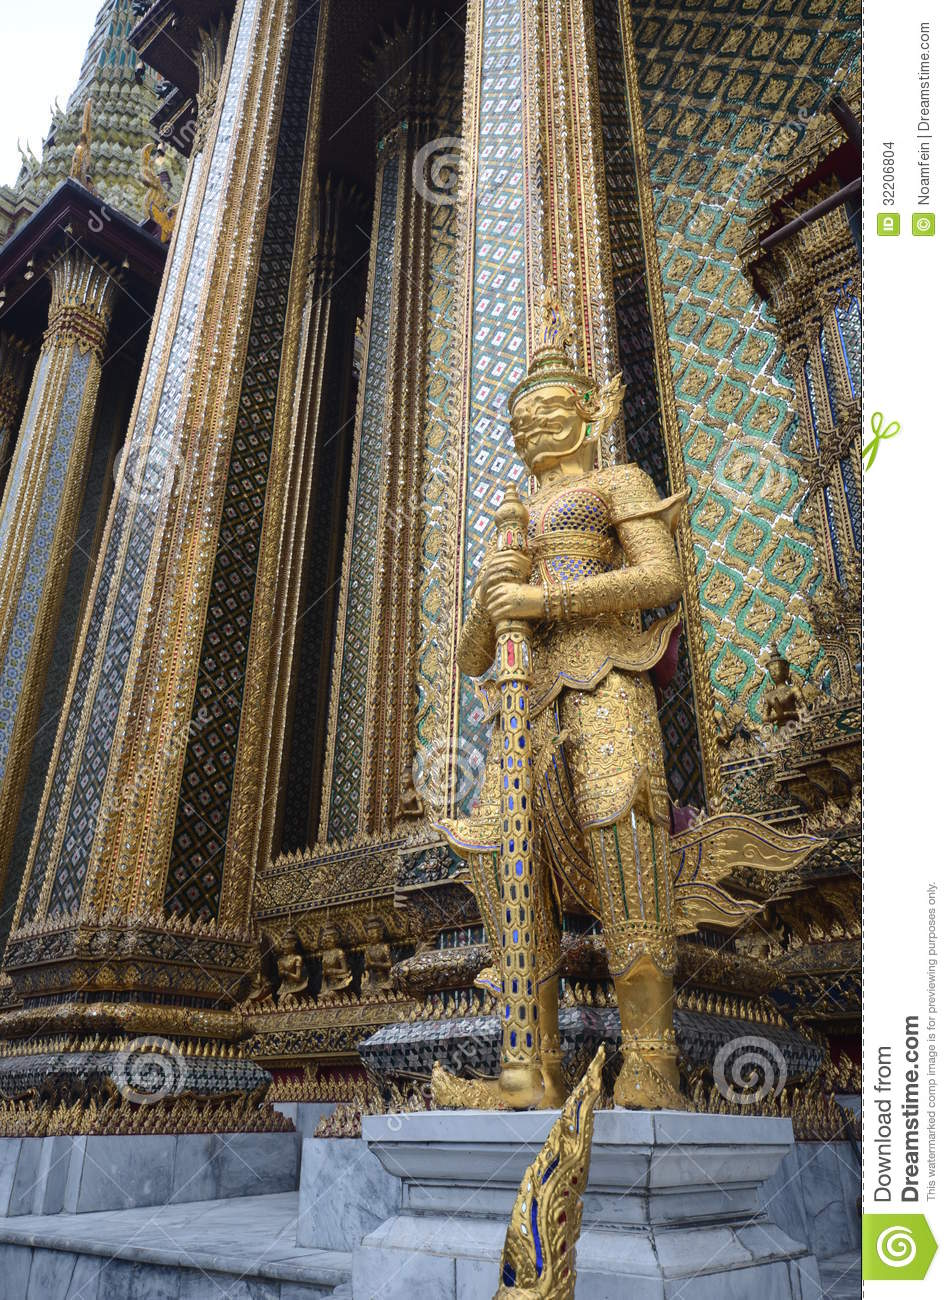 Statue In Grand Palace Bangkok Stock Images - Image: 32206804